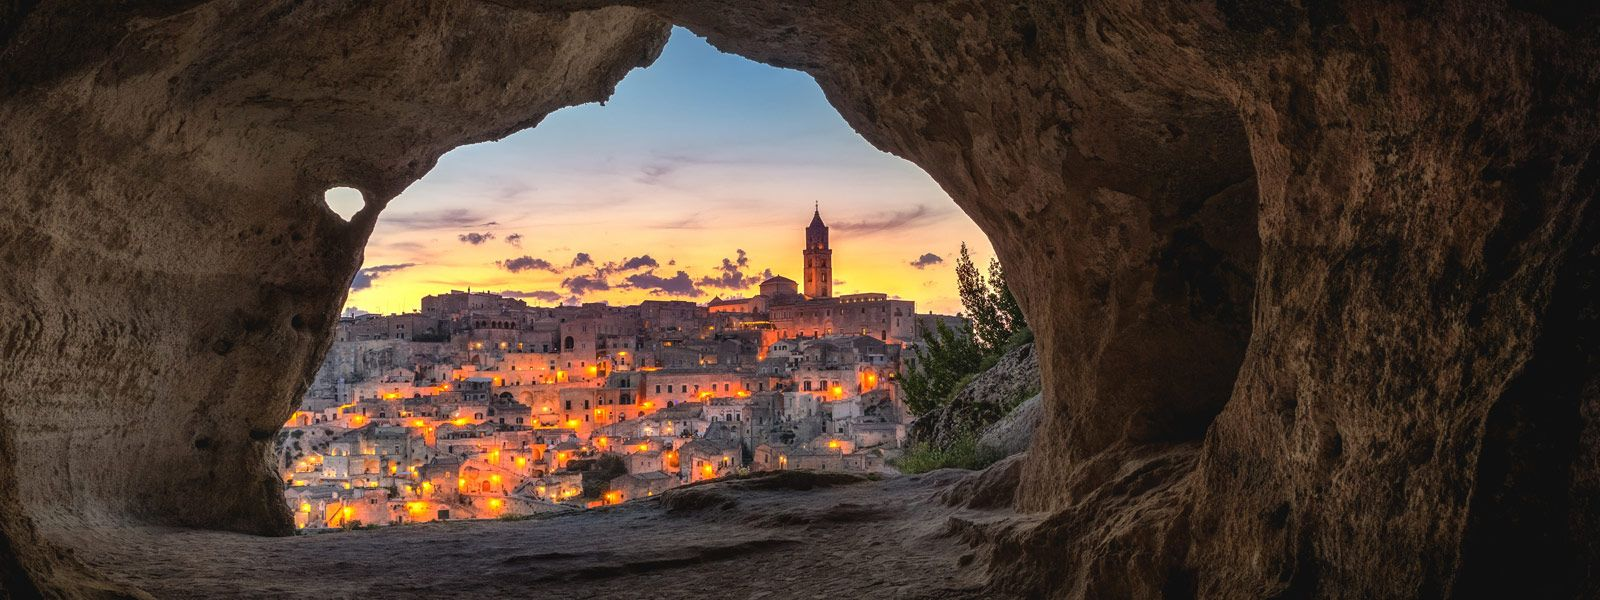 A Matera, Capitale europea della cultura 2019.In Matera, 2019 European Capital of Culture.